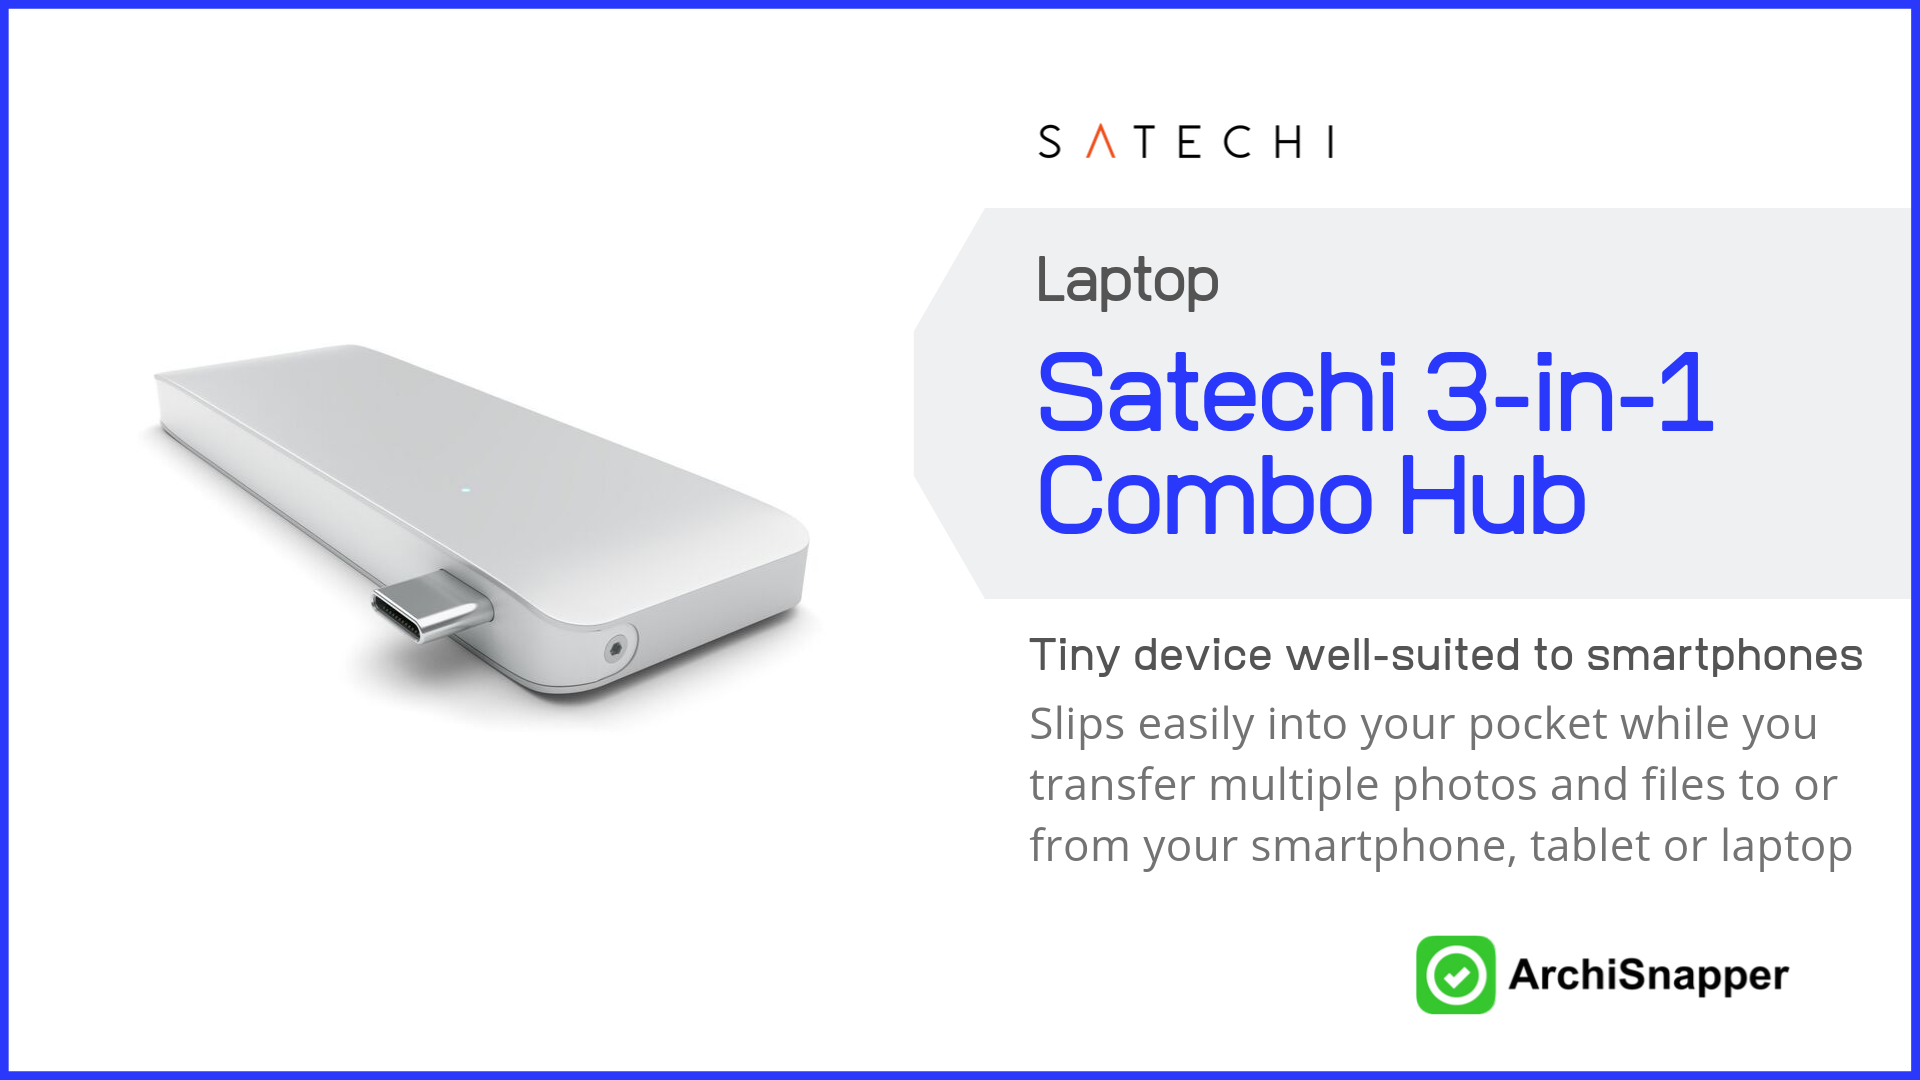 Satechi Type-C USB 3.0 3-in-1 Combo Hub | List of the 15 must-have tech tools and accessories ideal for architects presented by Archisnapper